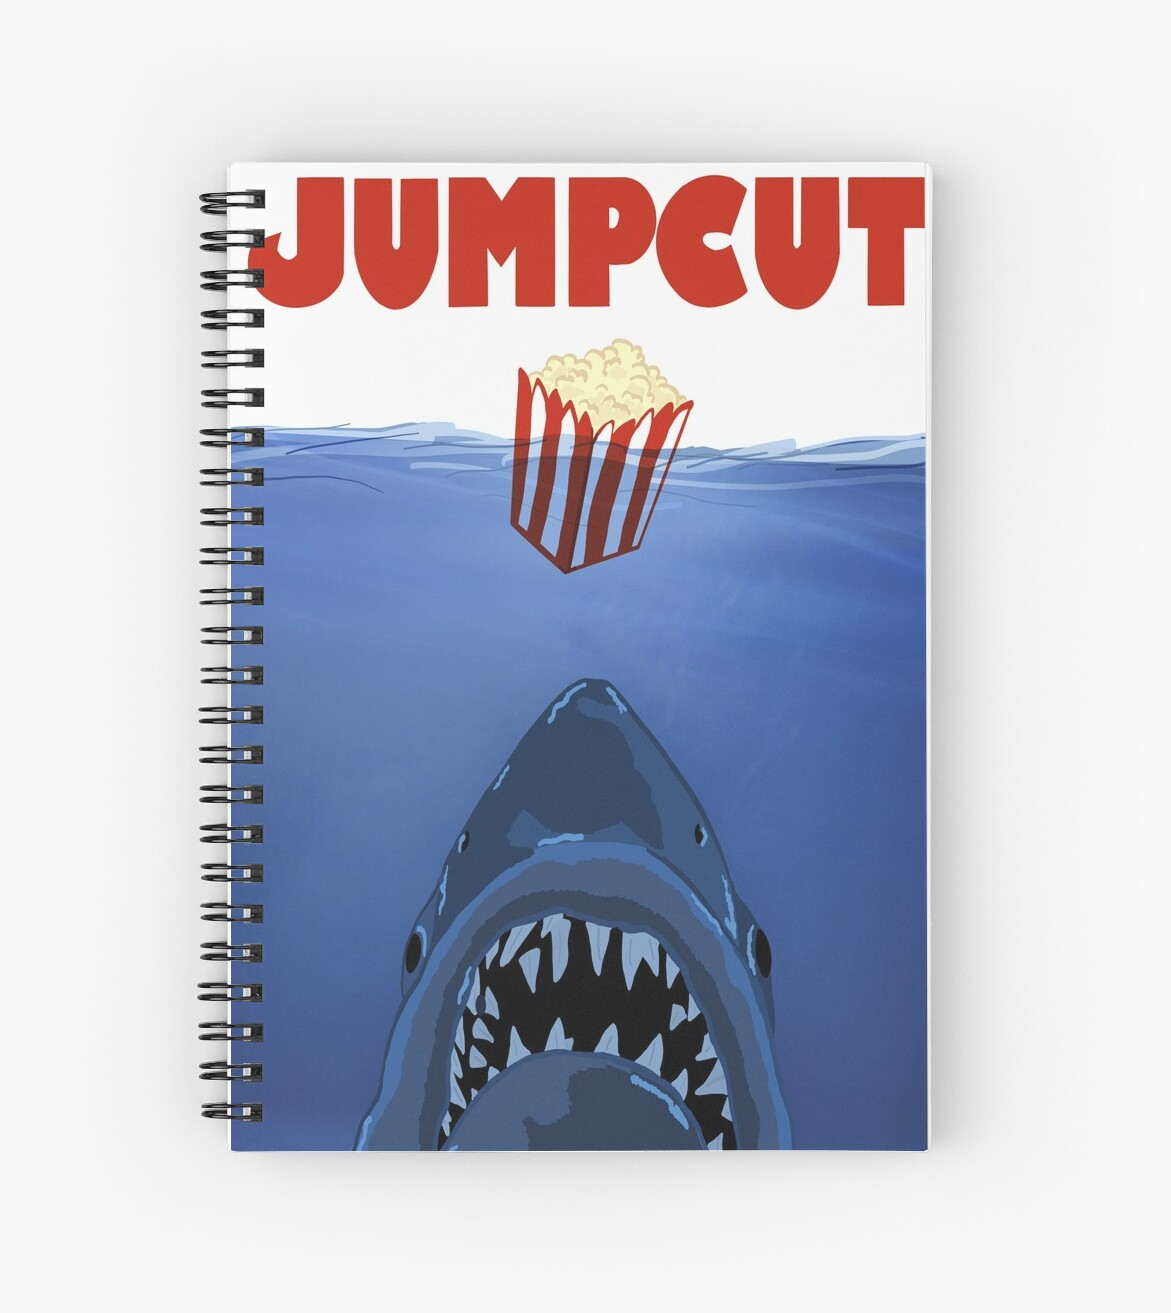 'Pop In The Water' Spiral Notebook by JUMPCUTONLINE